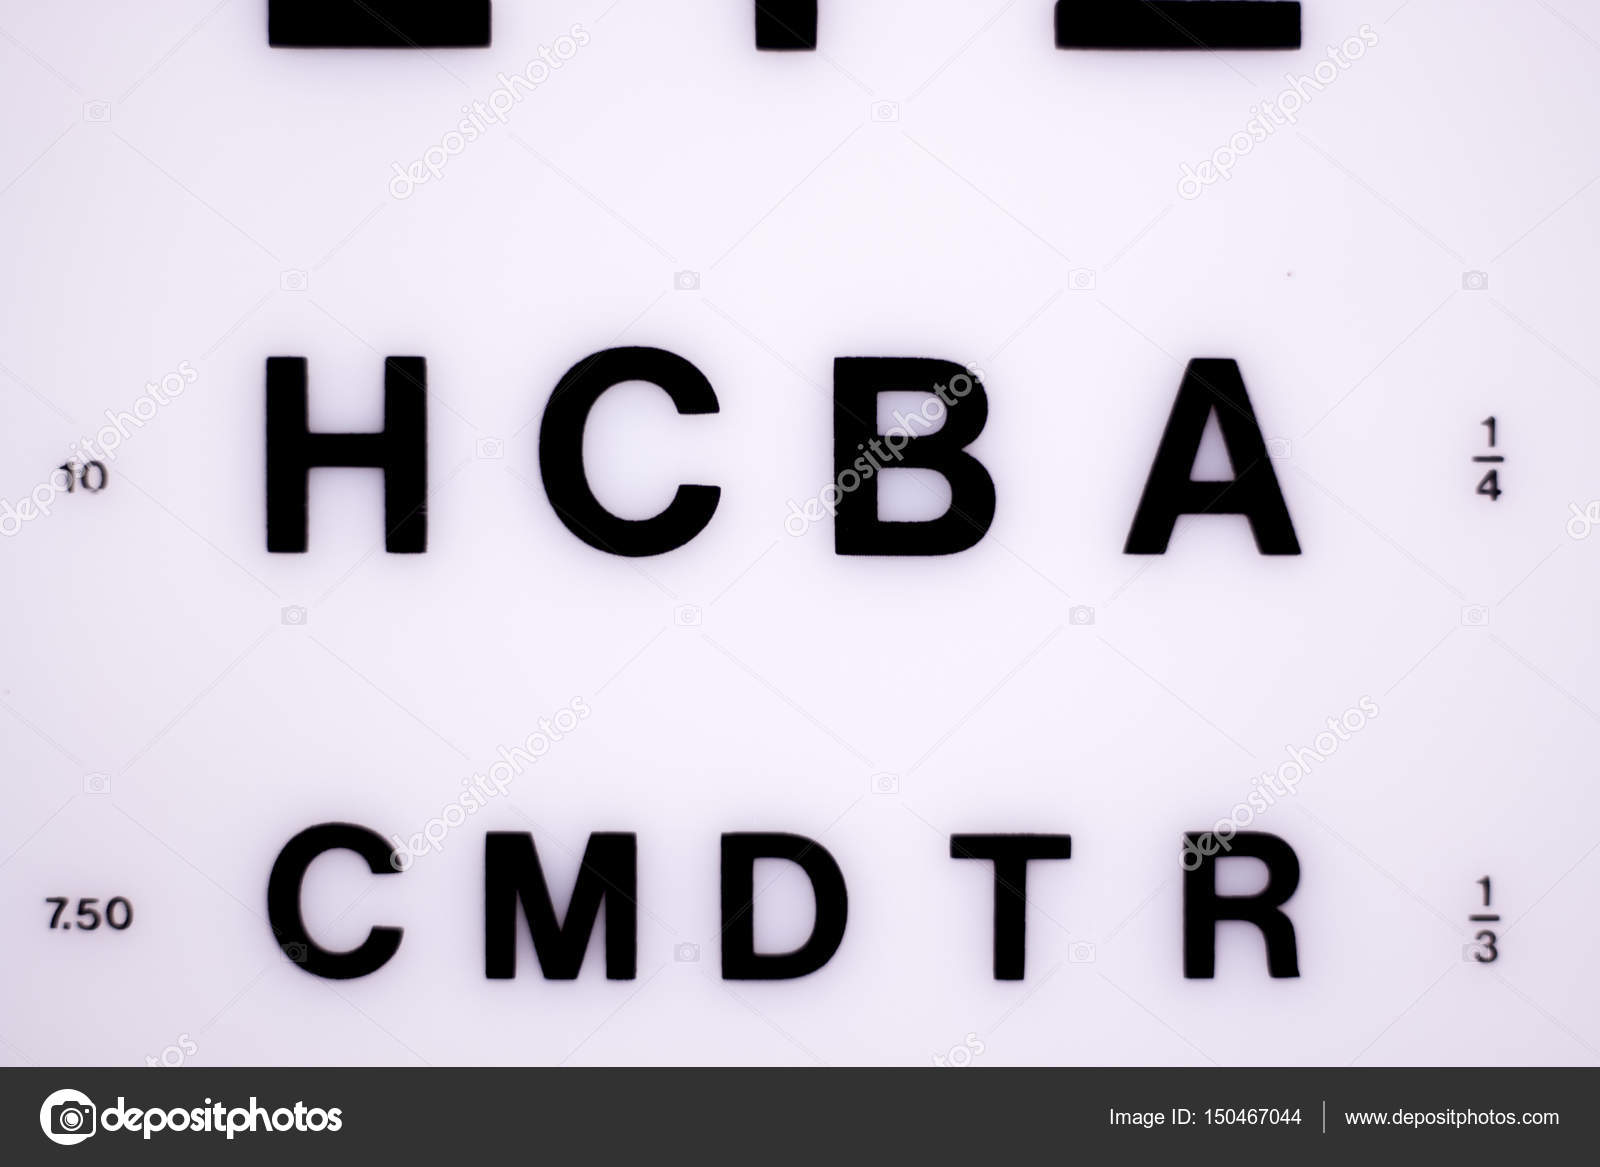 Optician eye test chart stock photo edwardolive 150467044 opticians ophthalmology and optometry eye test chart to test sight and vision for patients with eyesight issues photo by edwardolive nvjuhfo Images